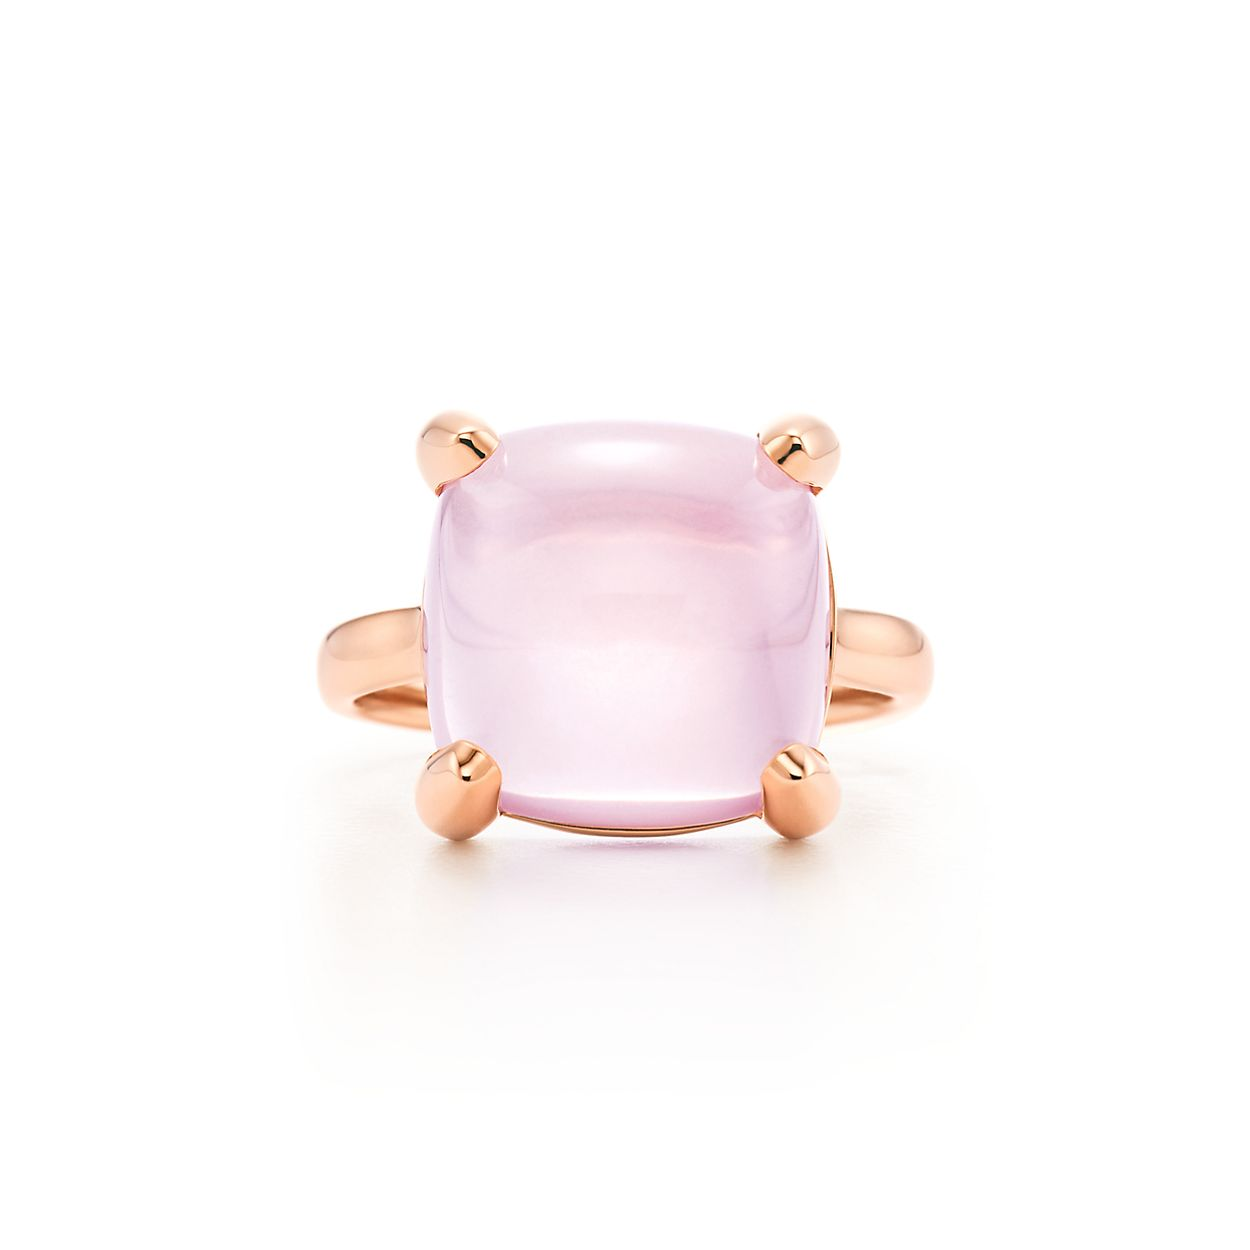 Palomas Sugar Stacks ring in 18k rose gold with a rose quartz - Size 6 Tiffany & Co. GzmKqzoF1N